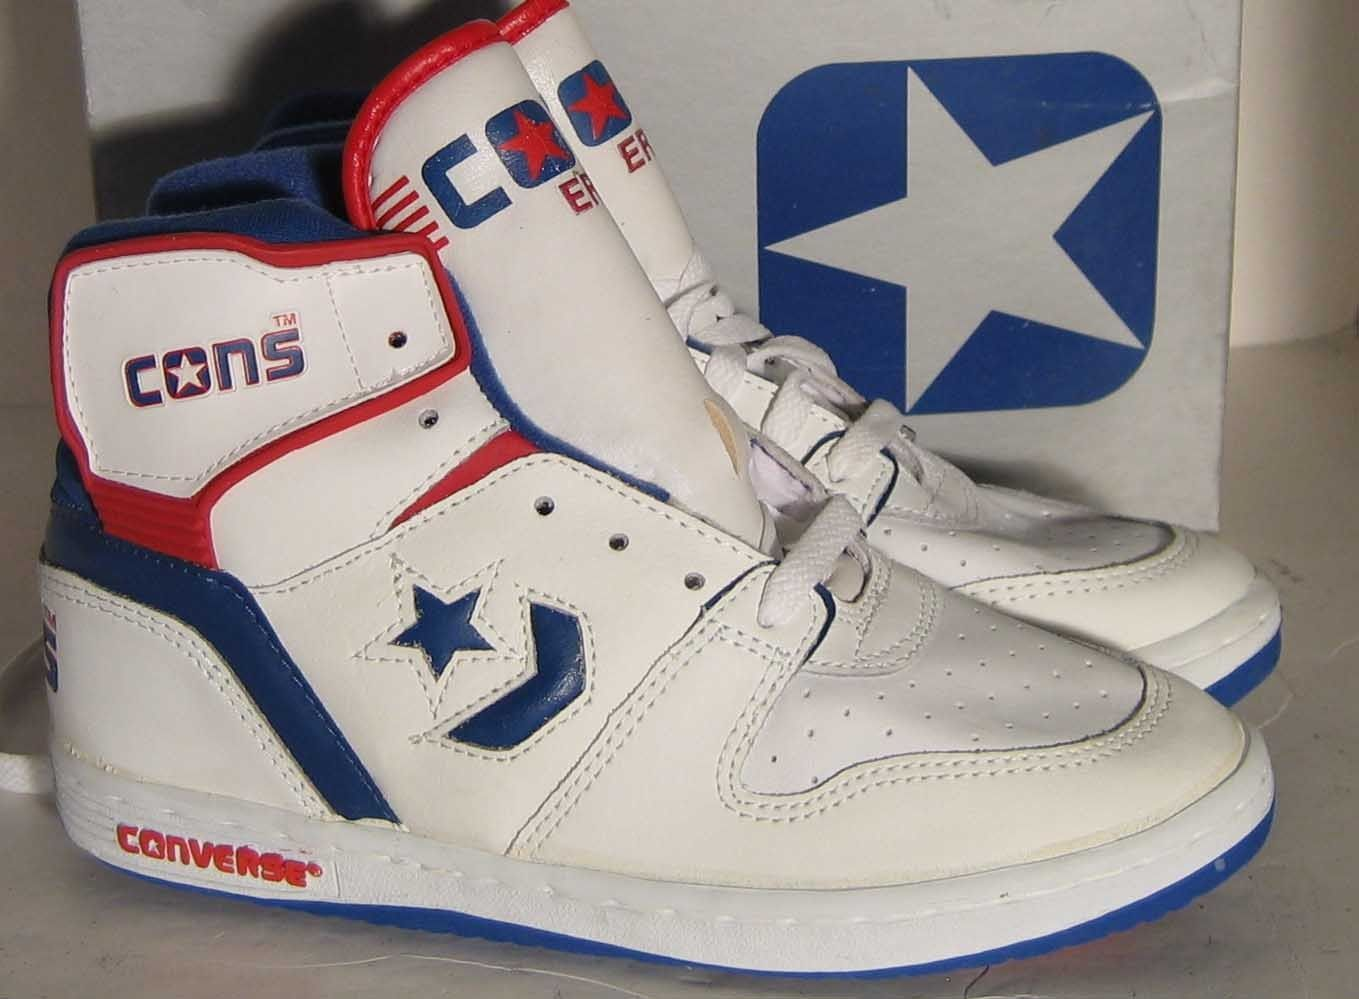 brand new dce05 266ab ... Cons ERX 200 Old school bball shoes Pinterest ...